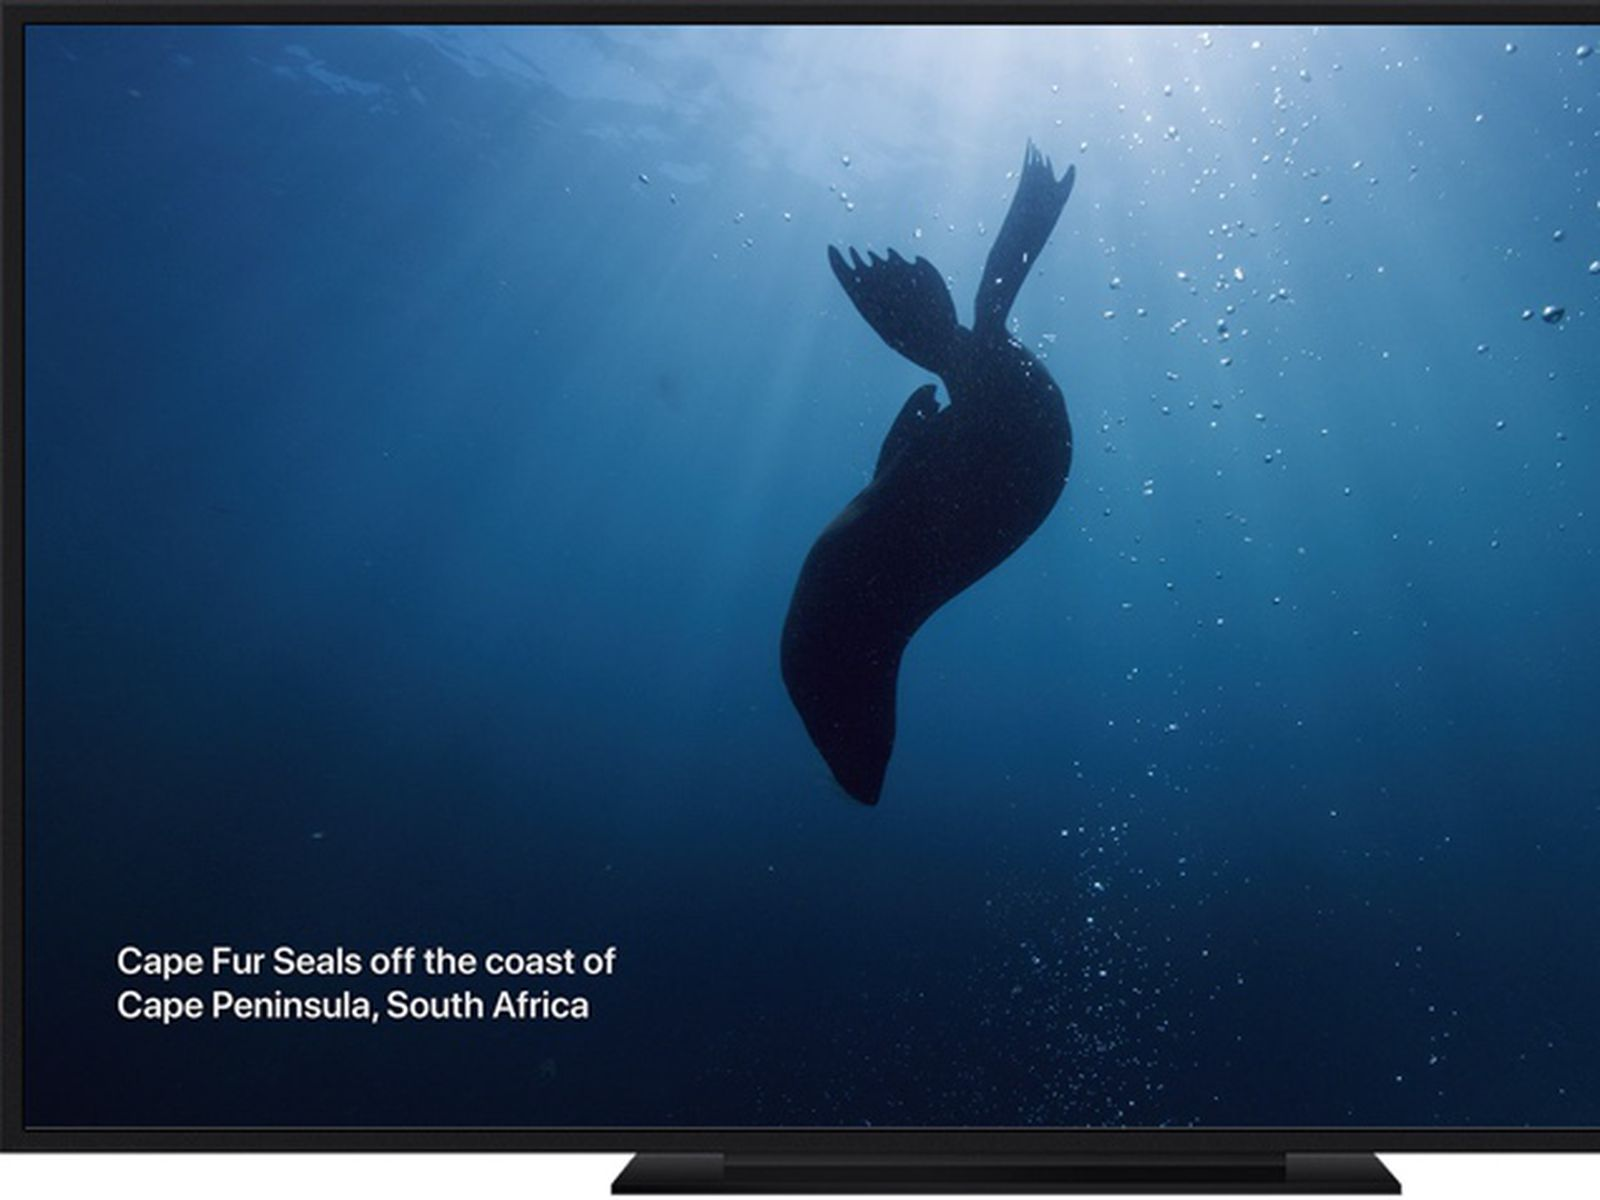 New Under The Sea Themed Screen Savers Now Available On Apple Tv In Tvos 13 Macrumors